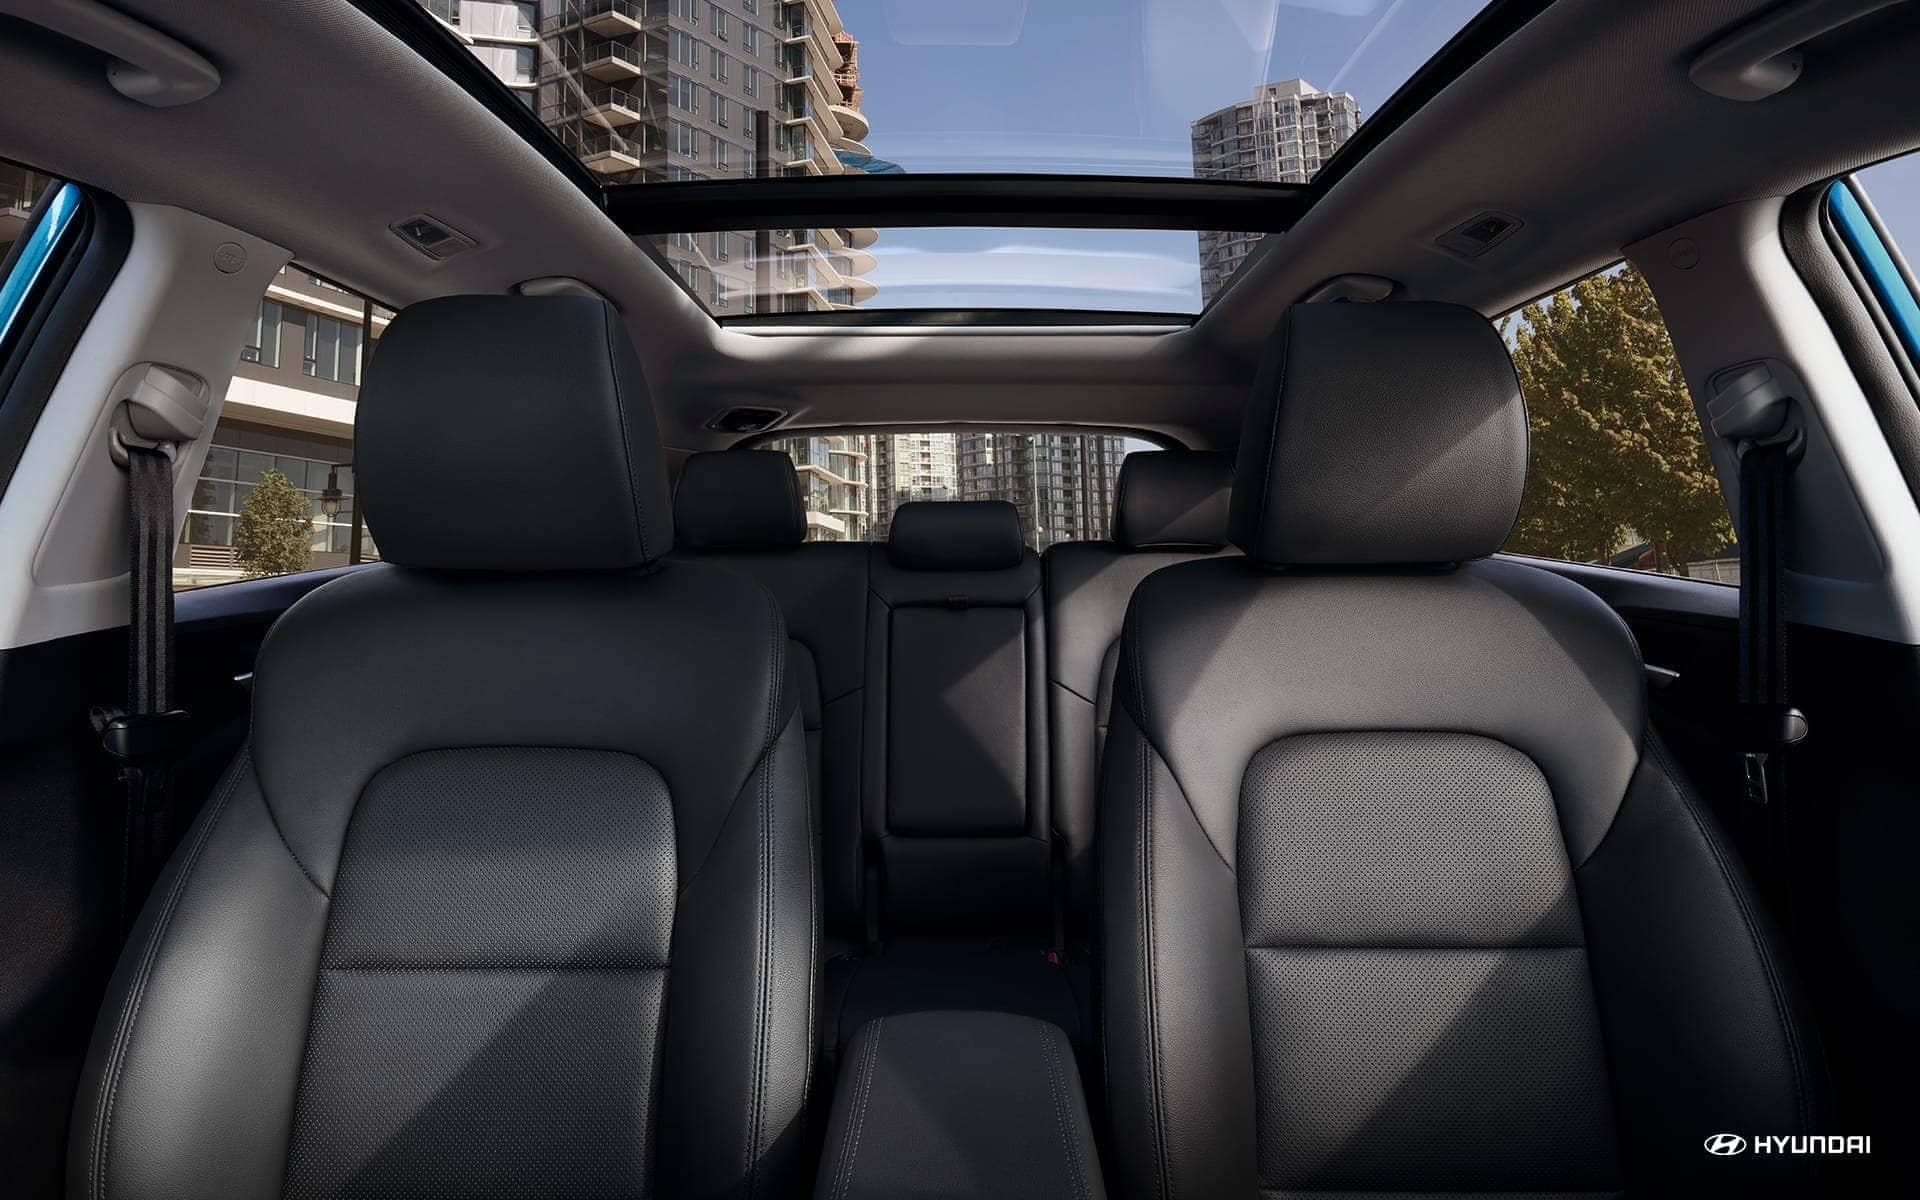 2019-Hyundai-Tucson-leather-seating-surfaces